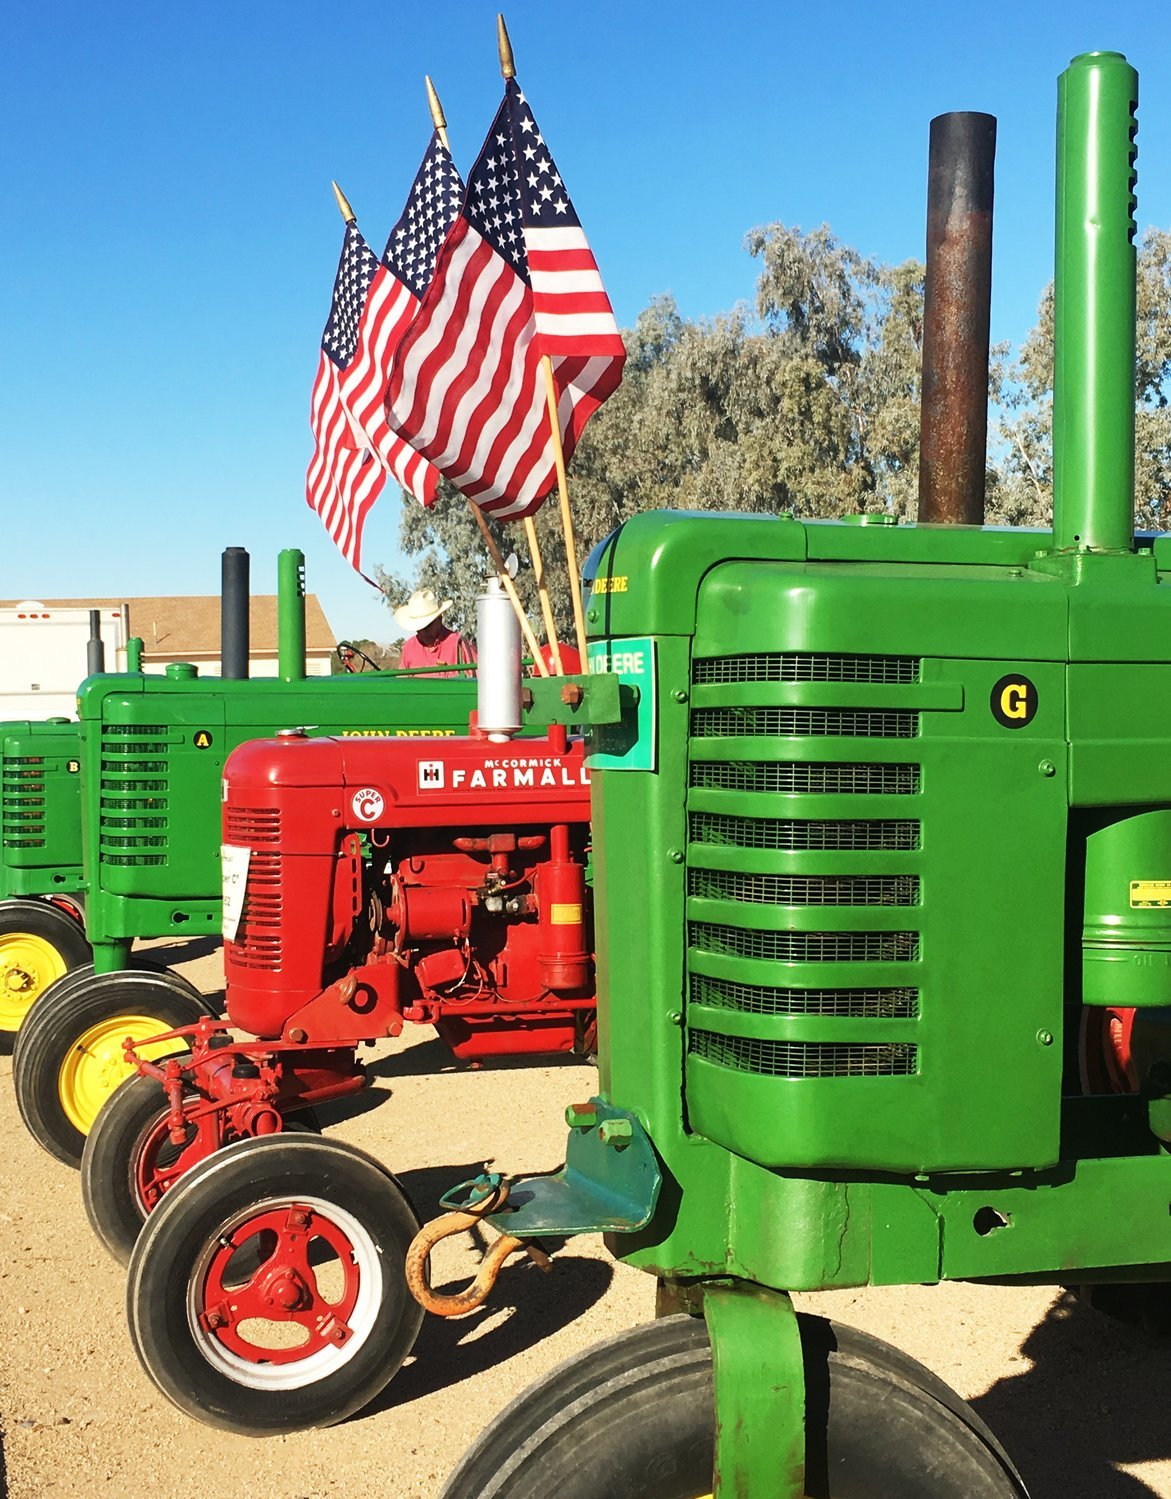 The annual Winter Antique Tractor & Engine Show returns to Glendale March 6.